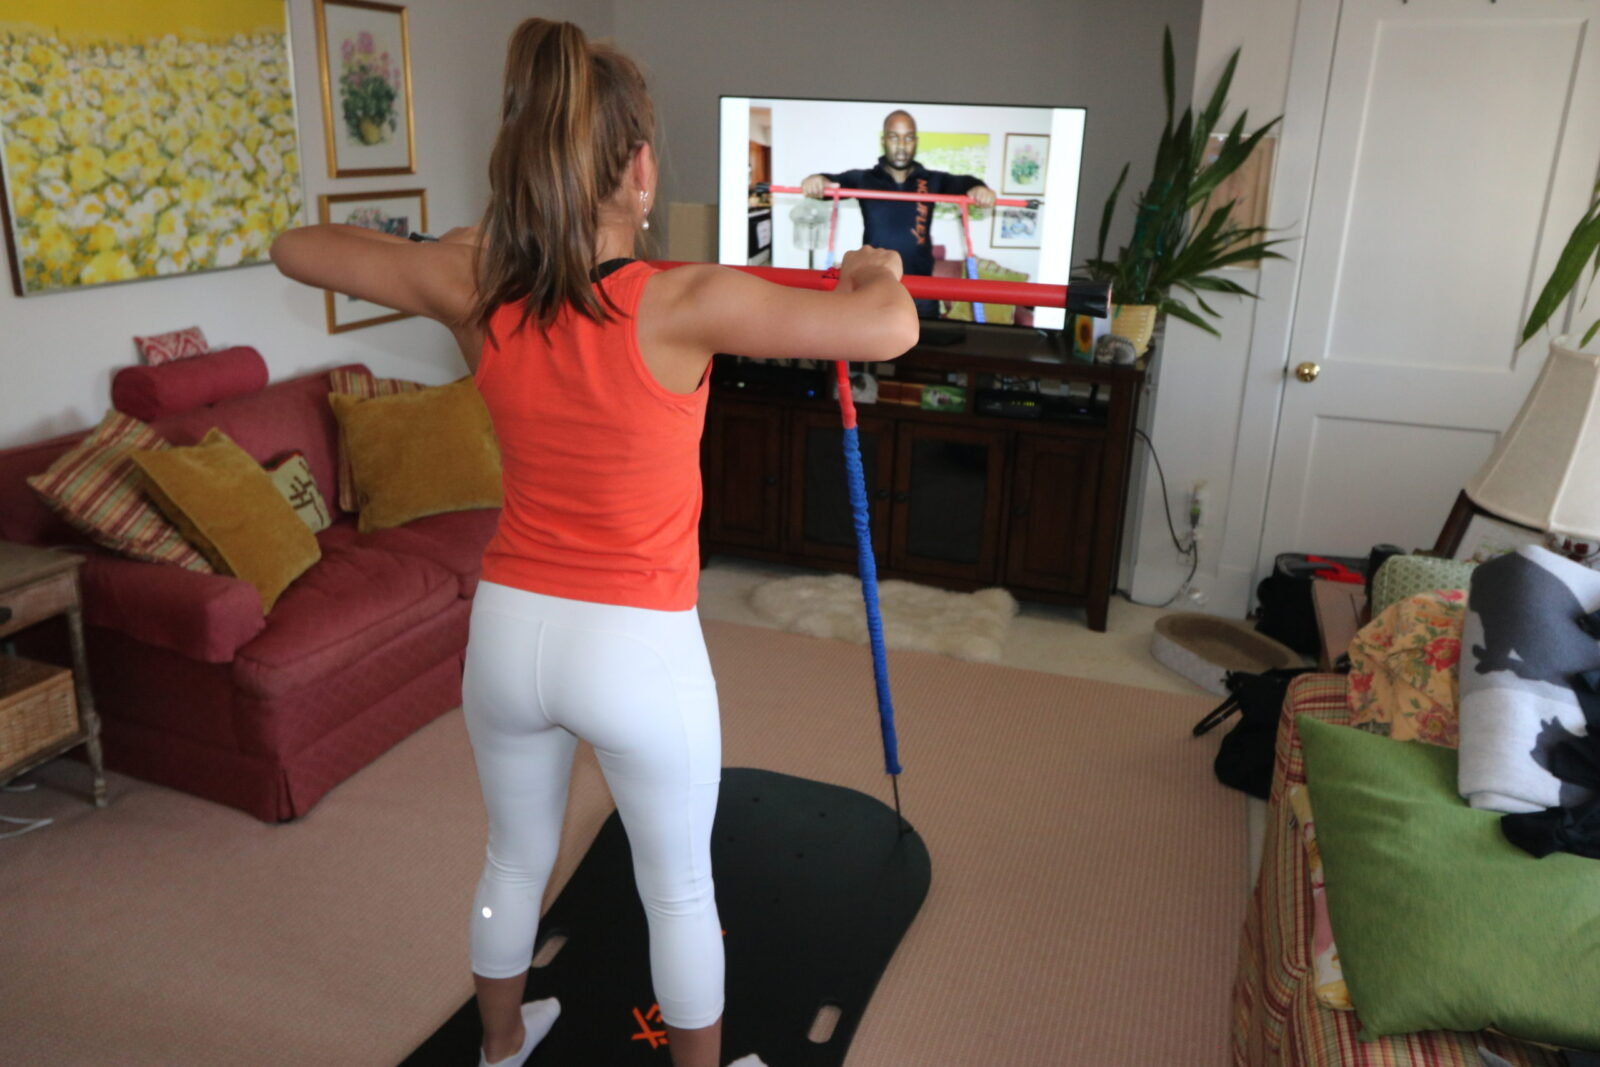 Woman trains virtually with a NouFlex coach